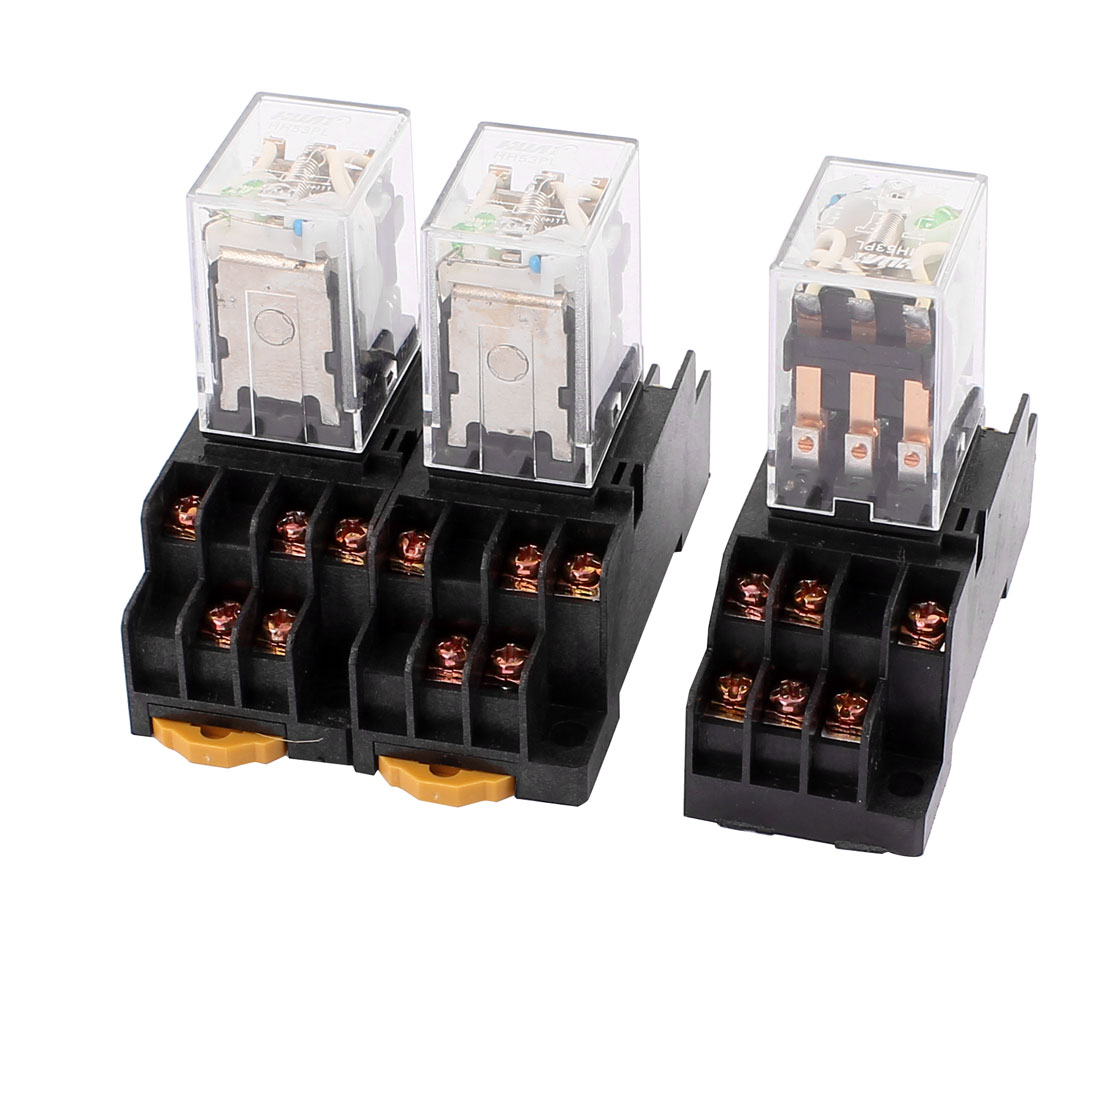 3Pcs HH53P-L DC 220VV Coil 11Pin 3NO 3NC Power Relay w PYF11A Socket Base